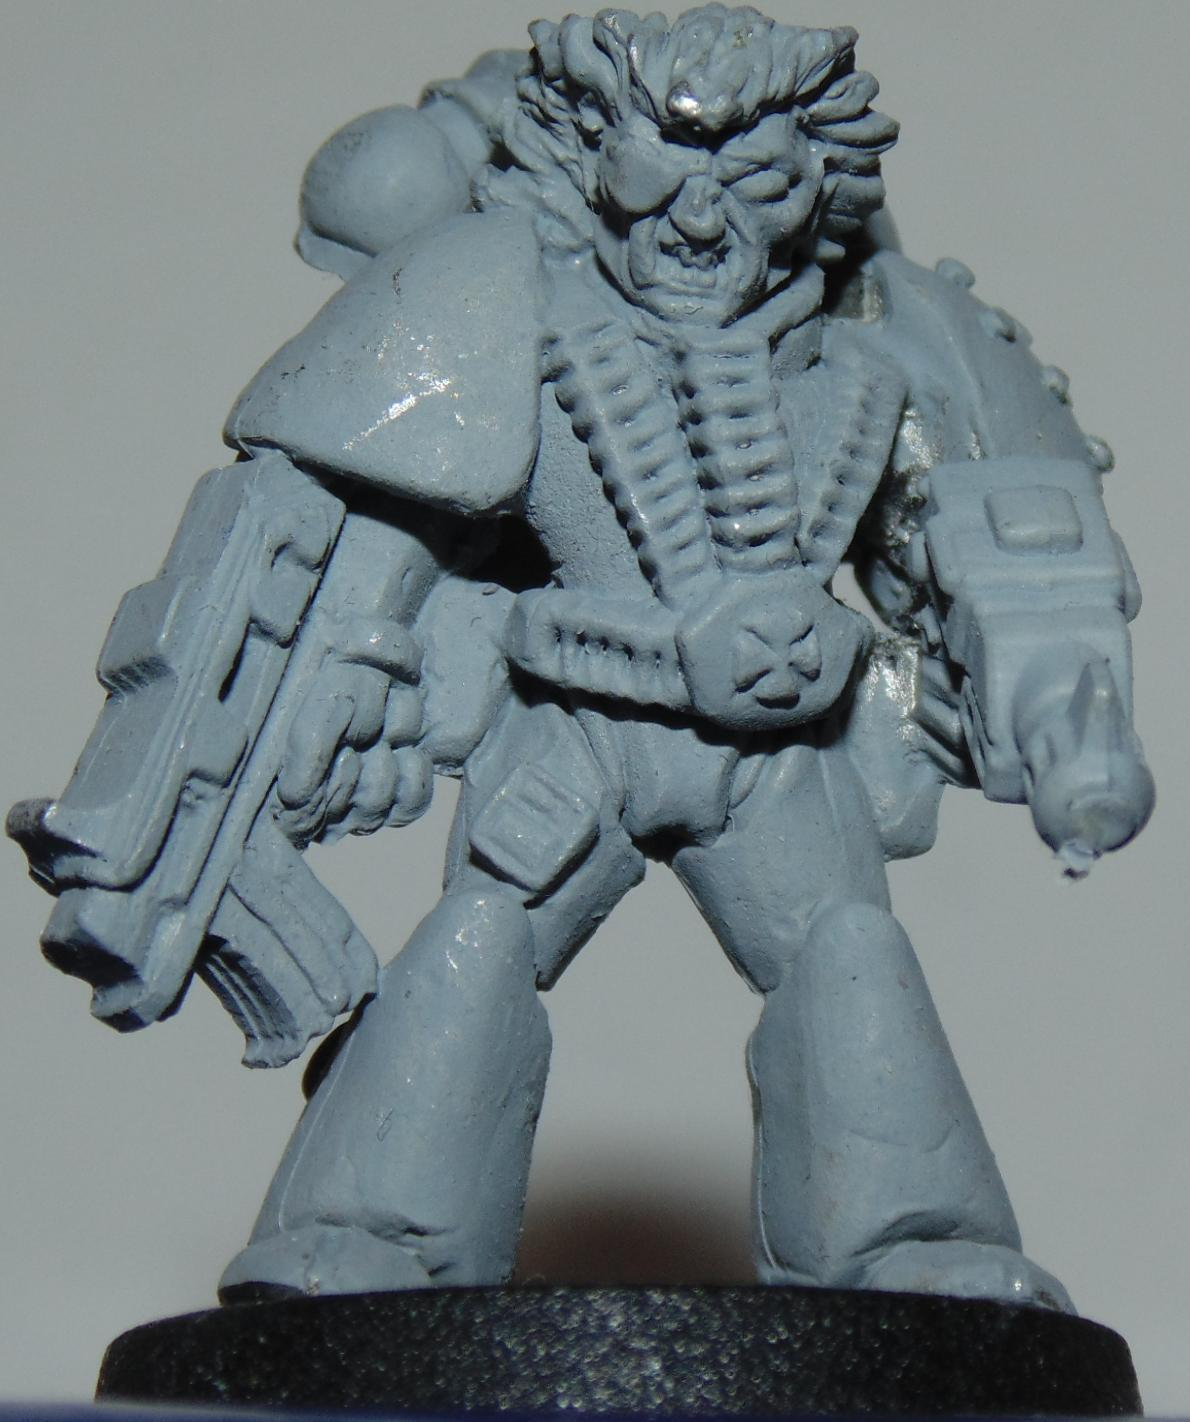 Dreadnought, Hands, Iron, Old, Rogue Trader, Rt, Space, Space Marines, Style